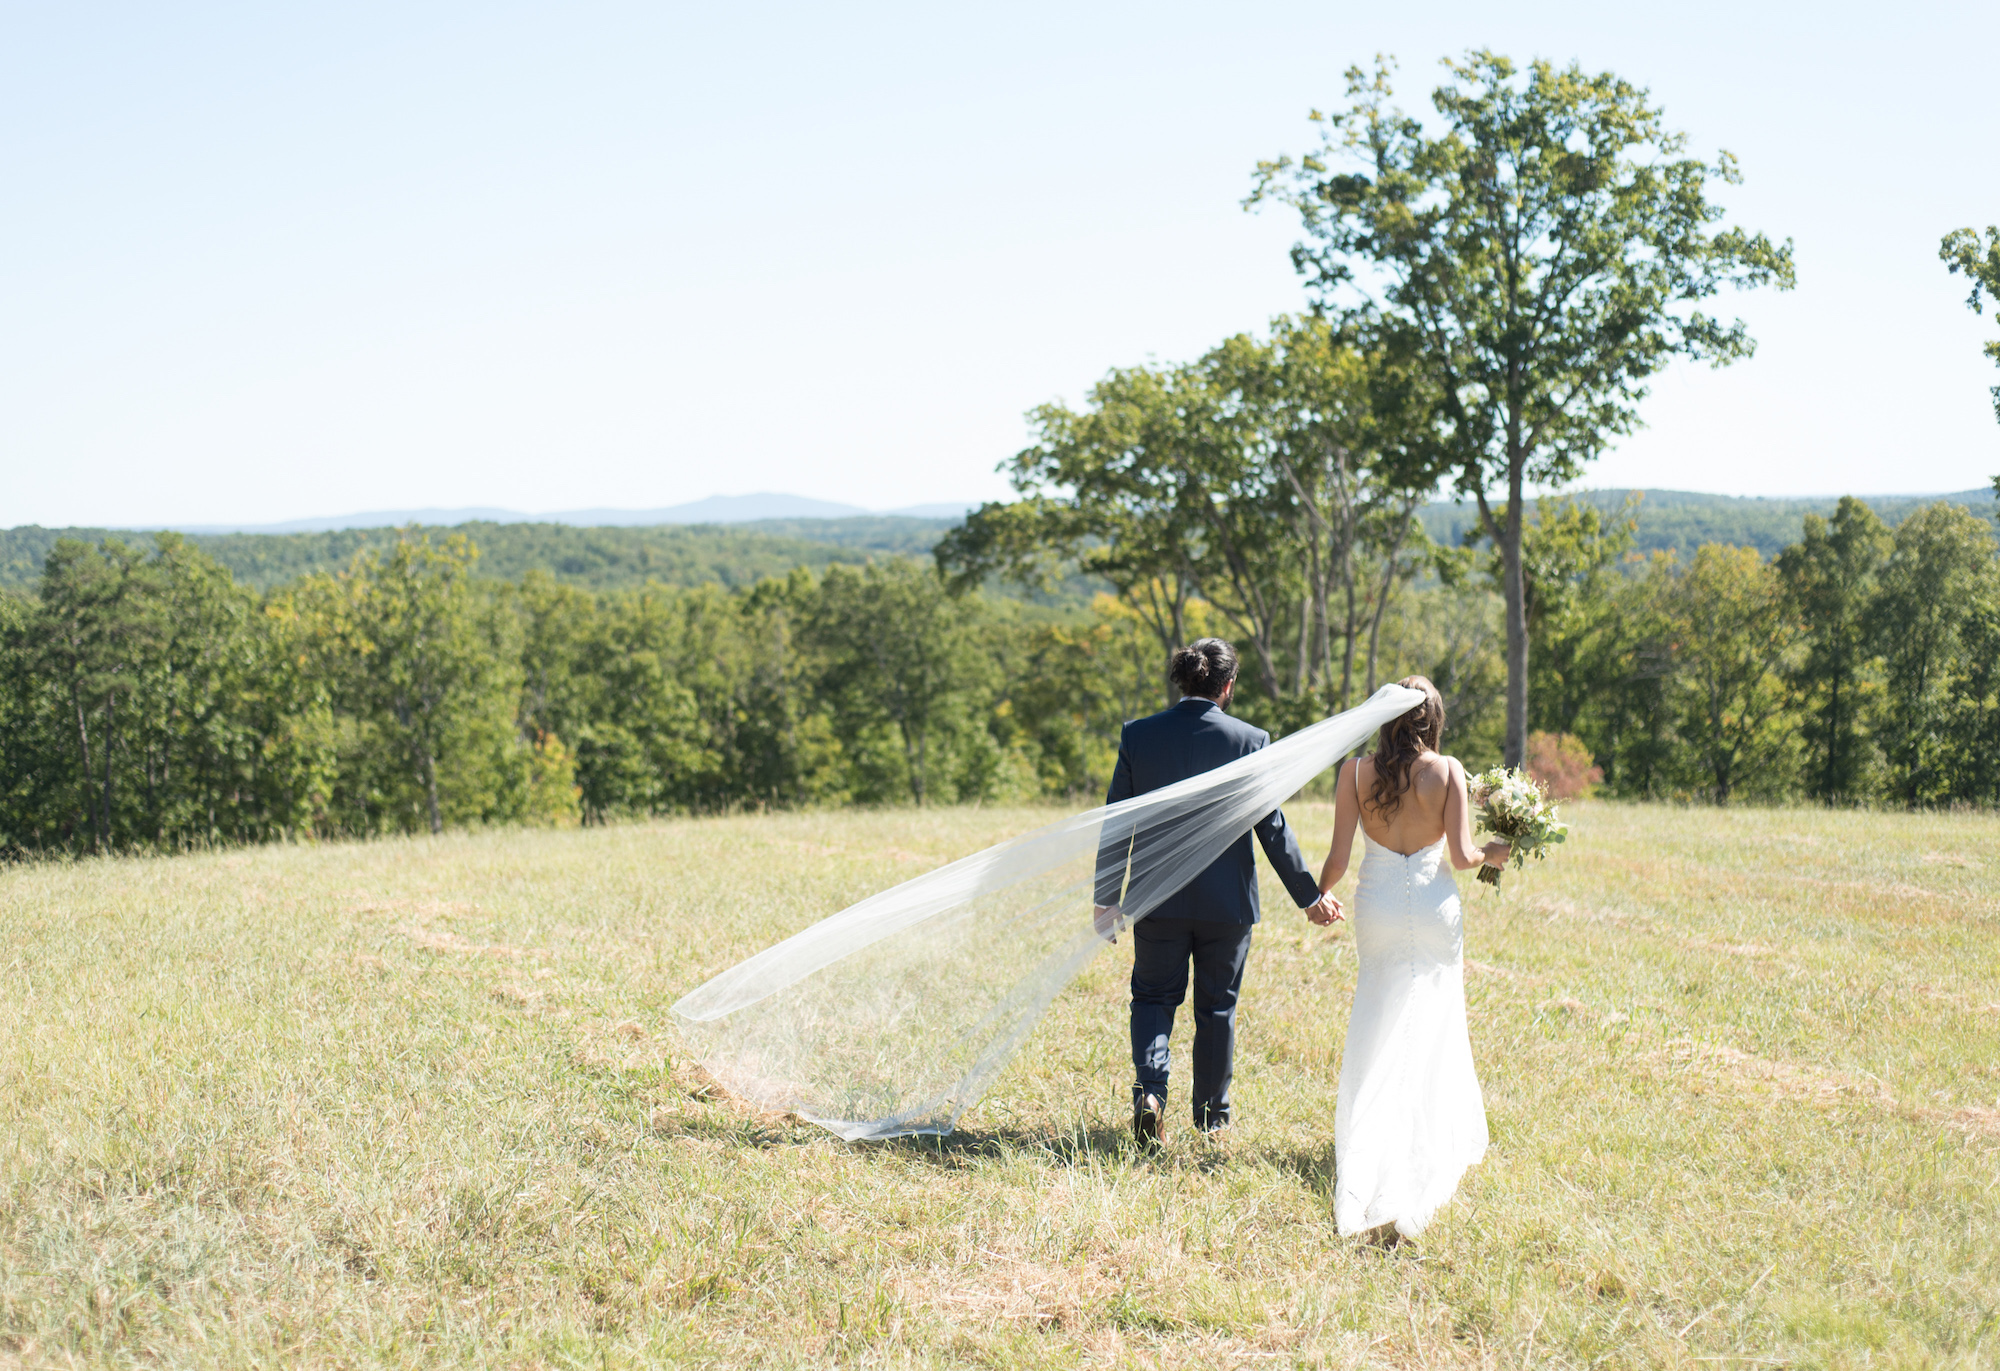 Georgia Barn Wedding, North Georgia Barn Wedding, Dreamiest Barn Wedding, Rustic Wedding Chic